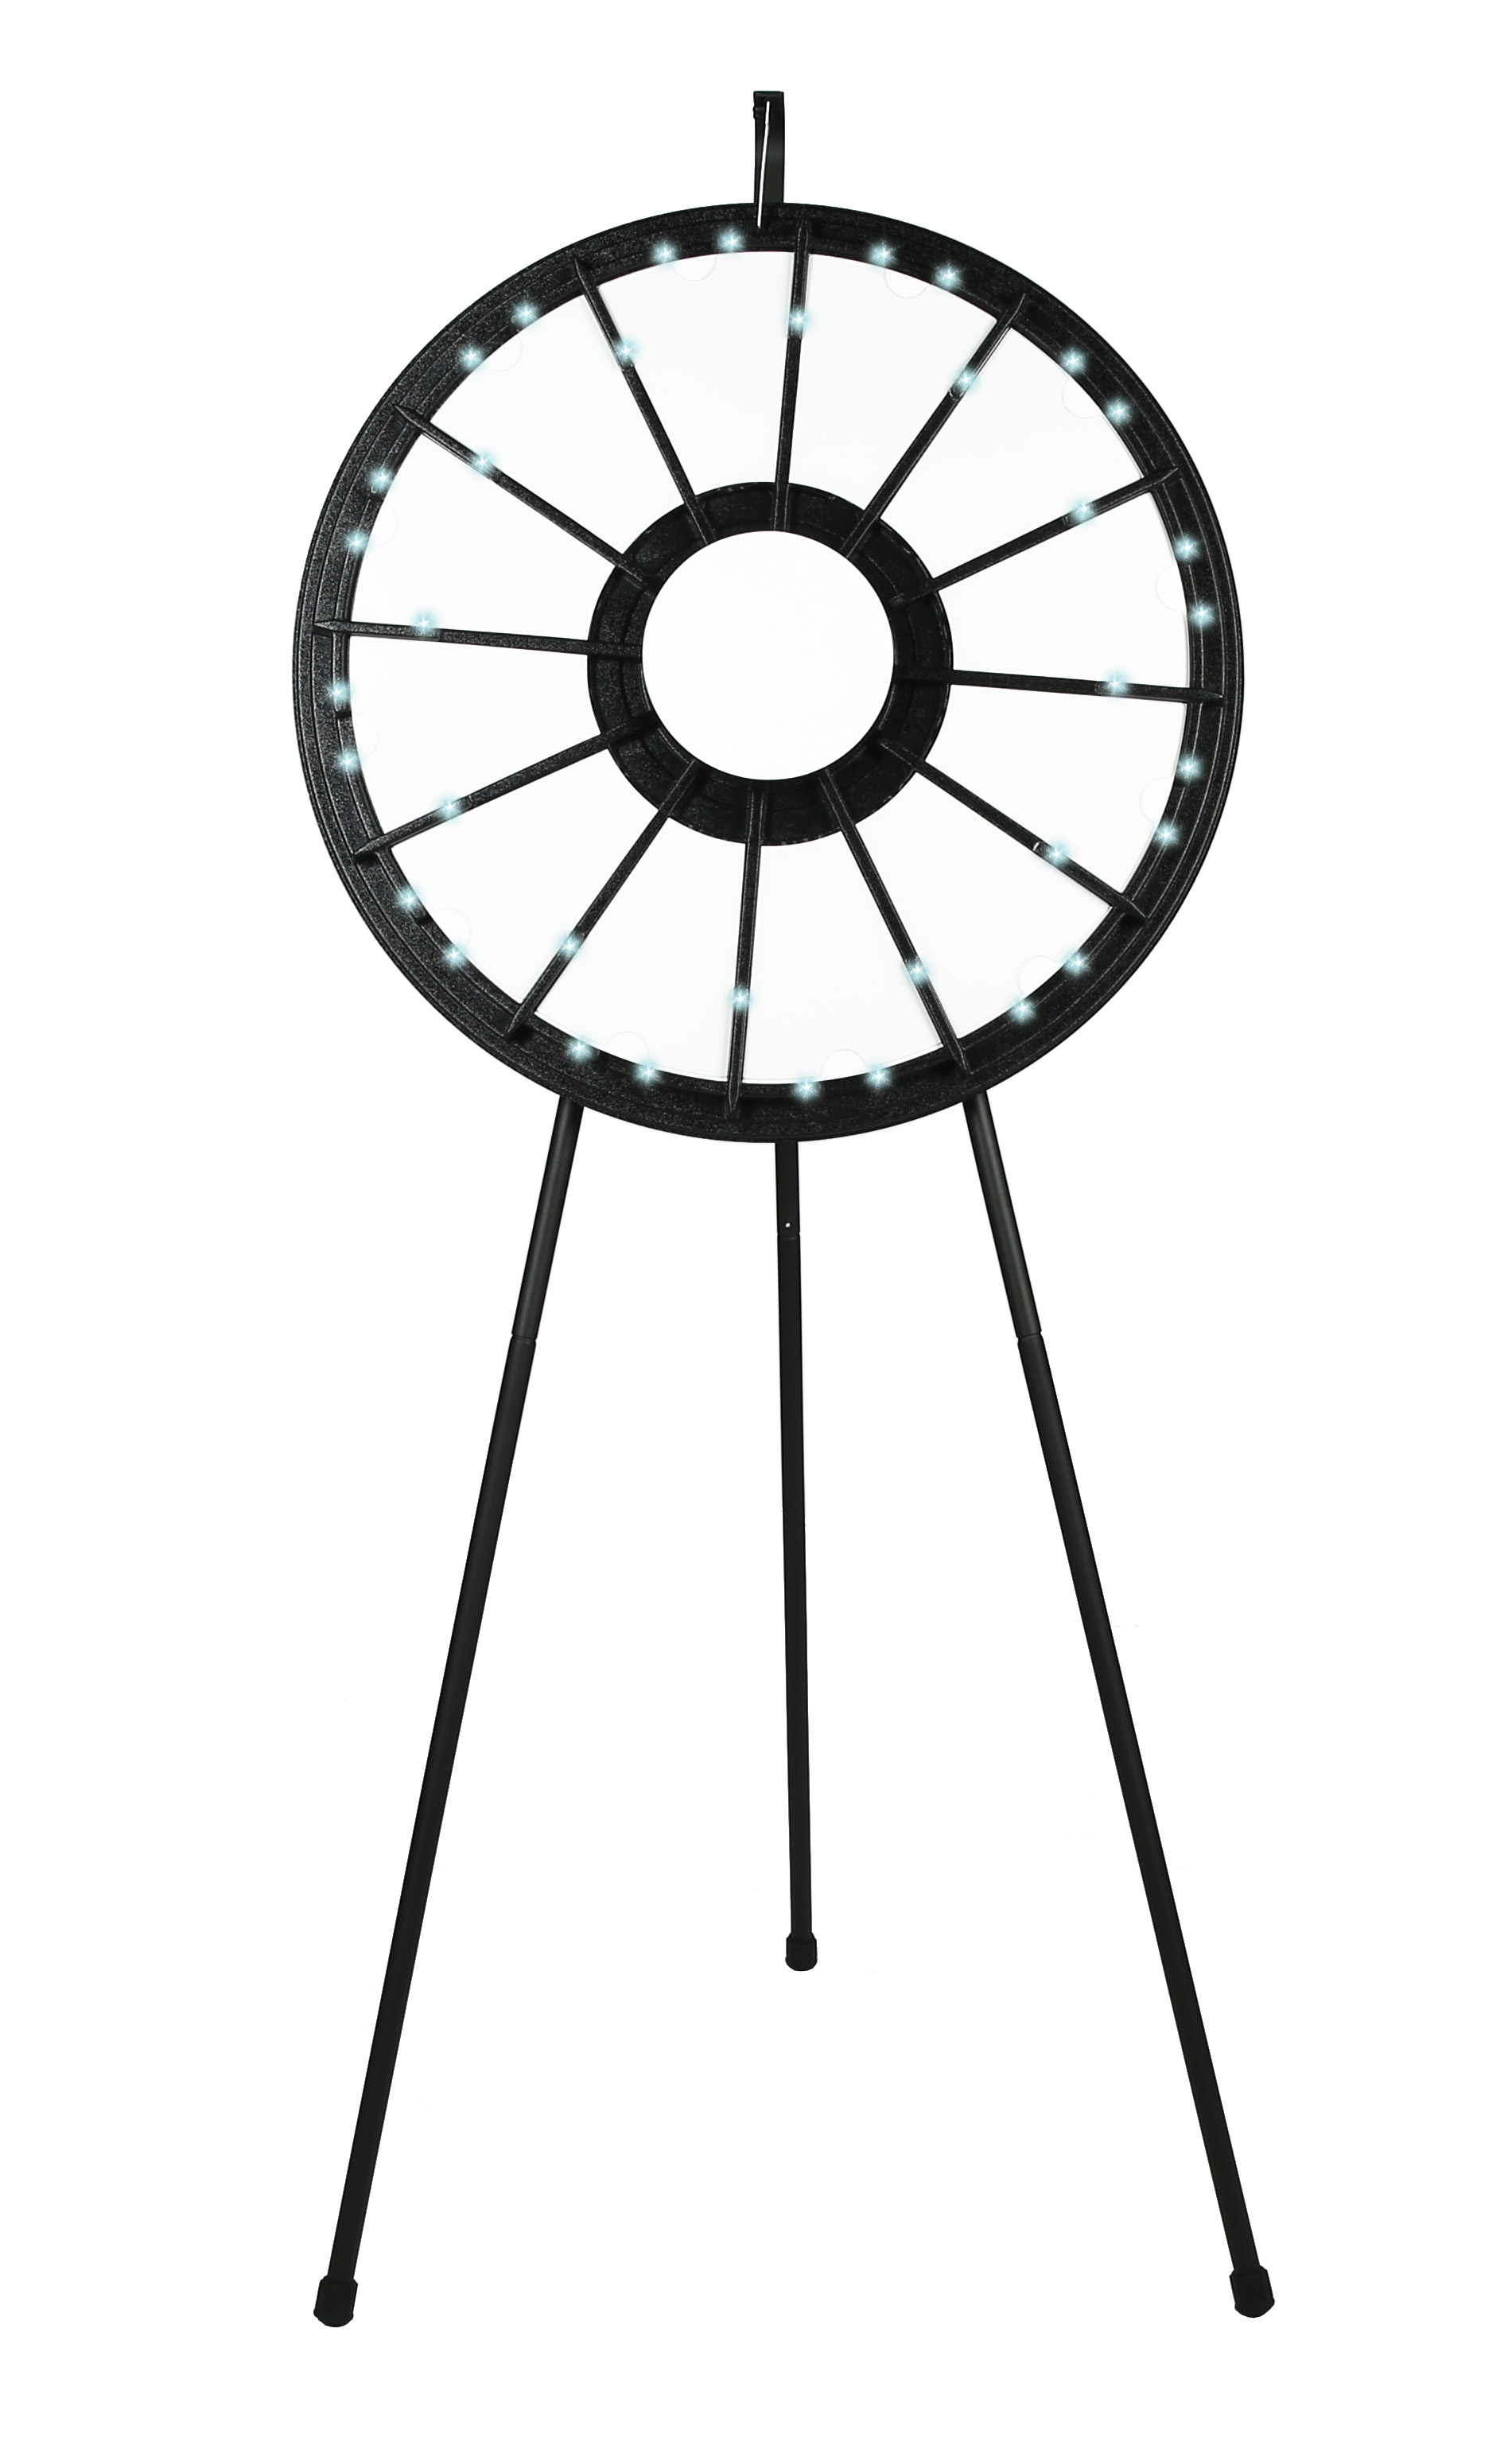 12 Slot Floor Classic Prize Wheel With Lights